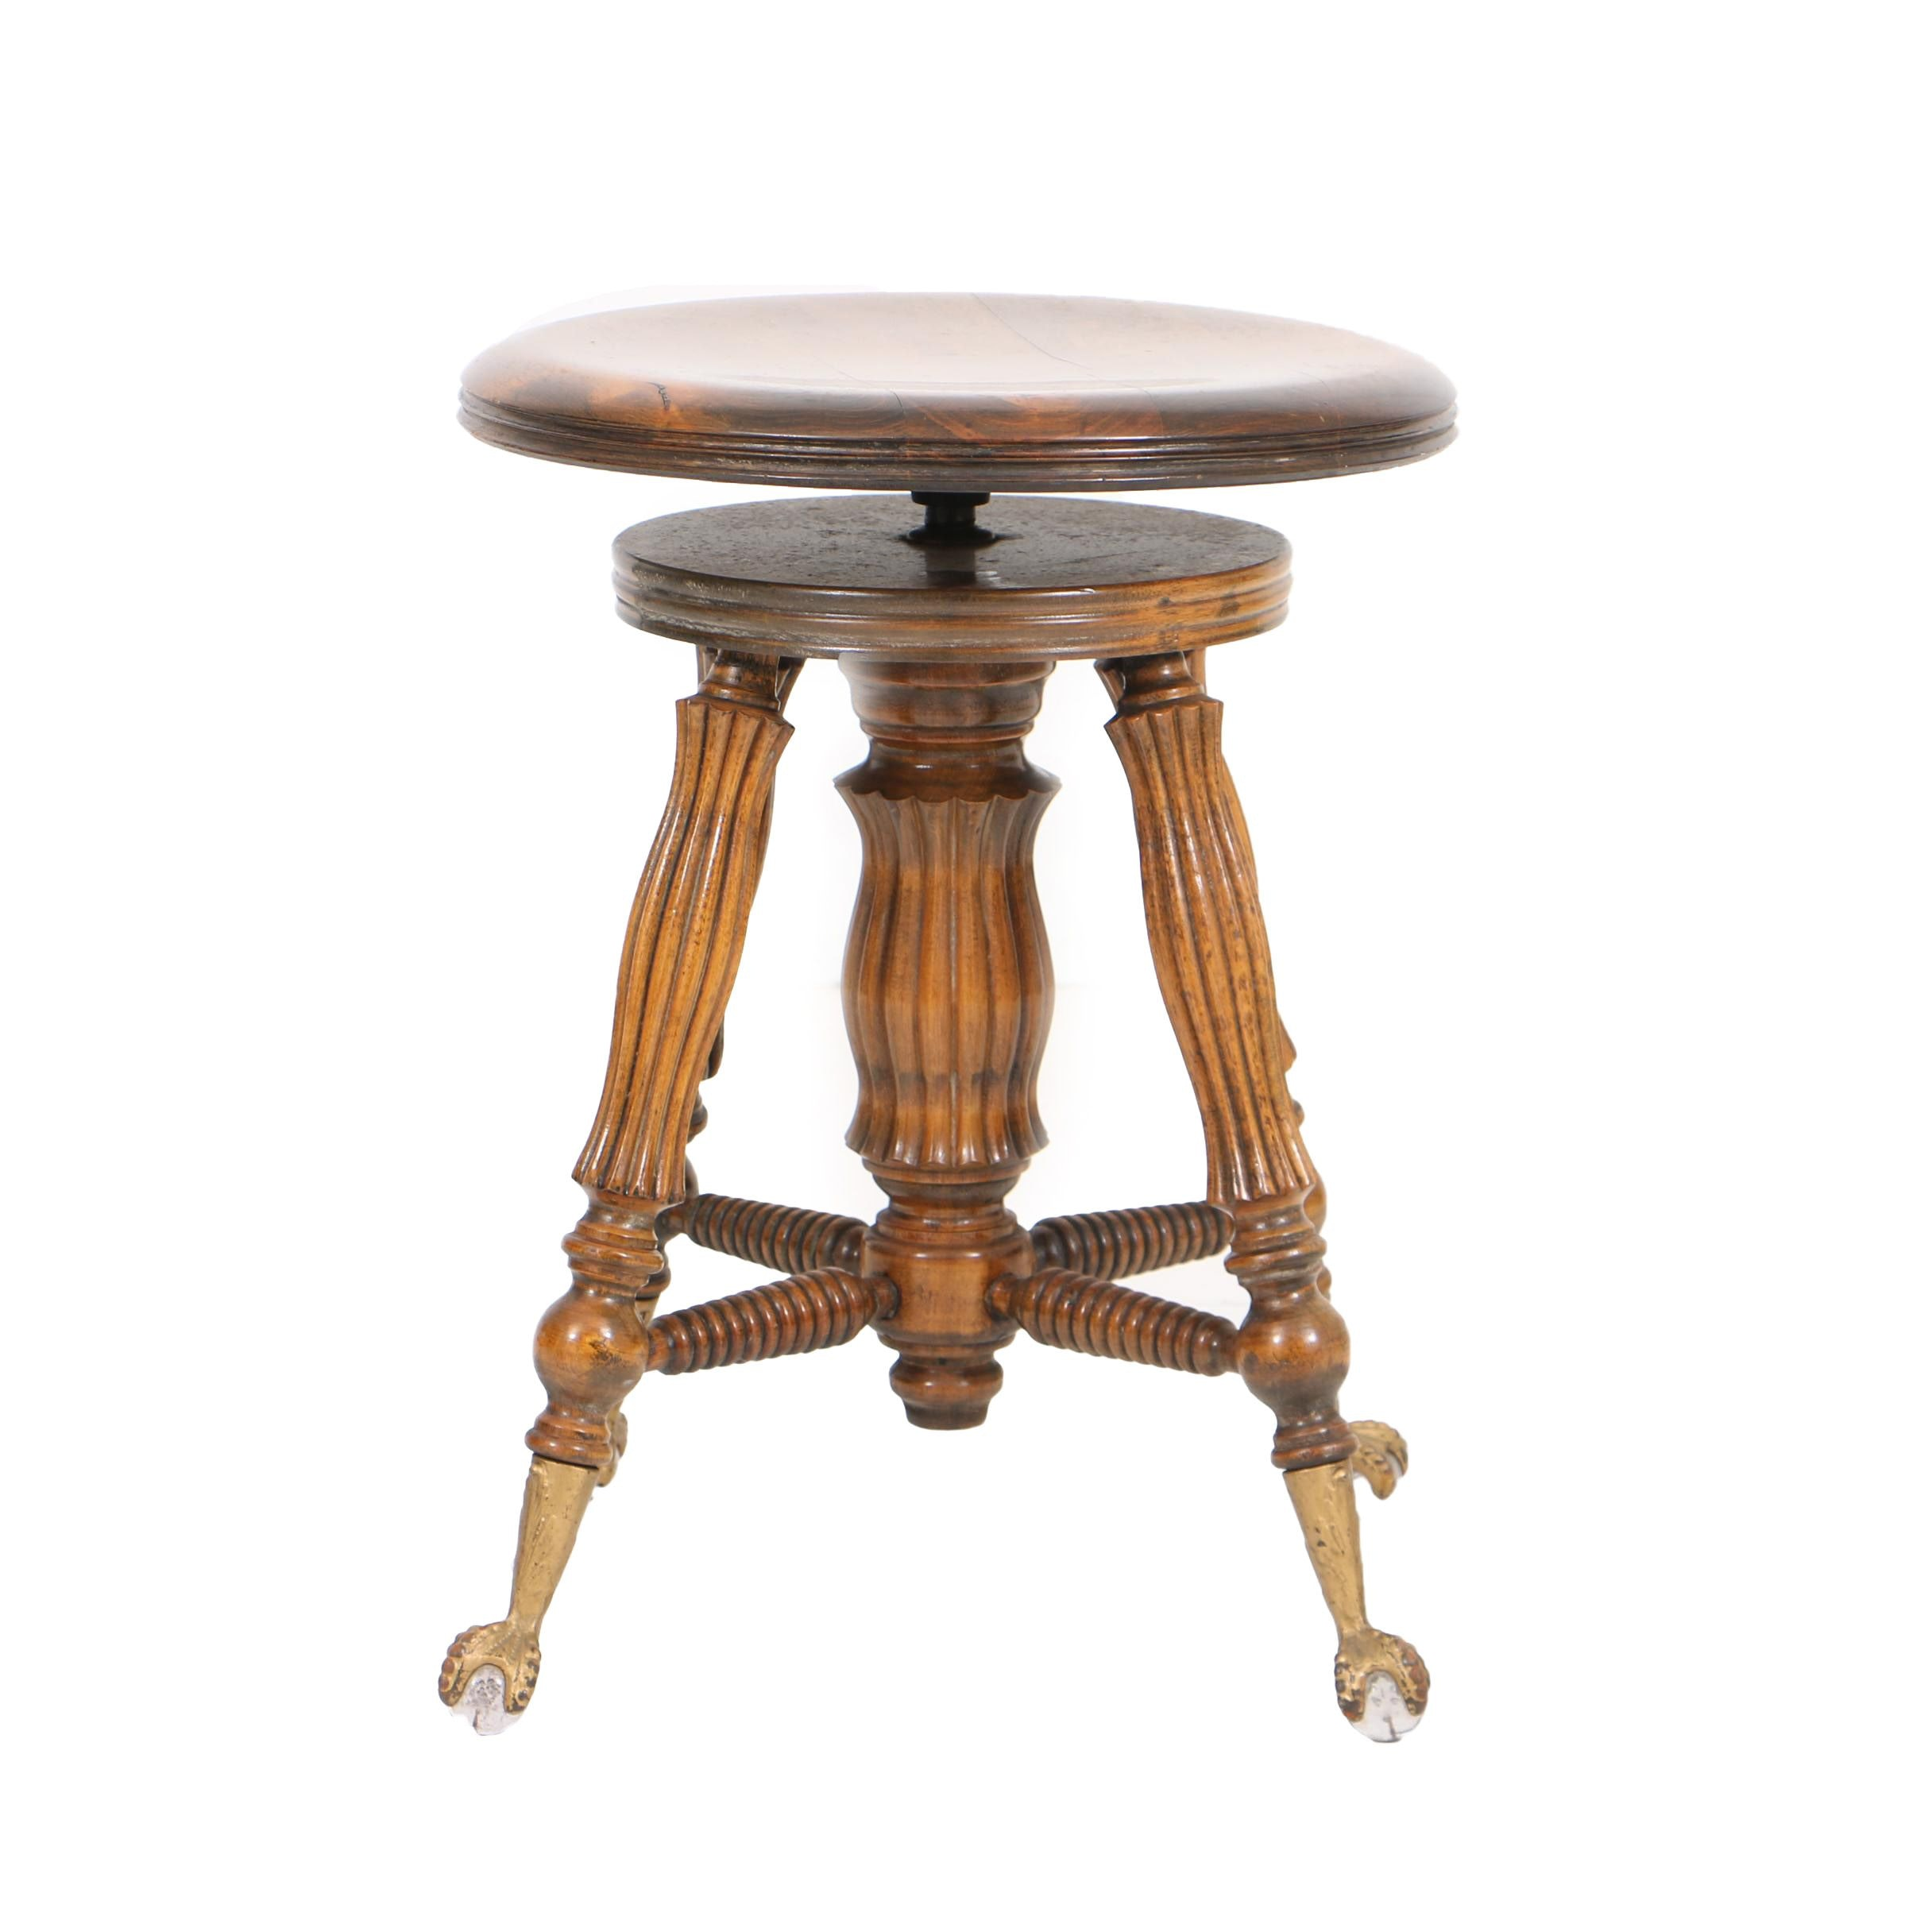 Antique Oak and Glass Ball Feet Piano Stool by Lyon & Healy